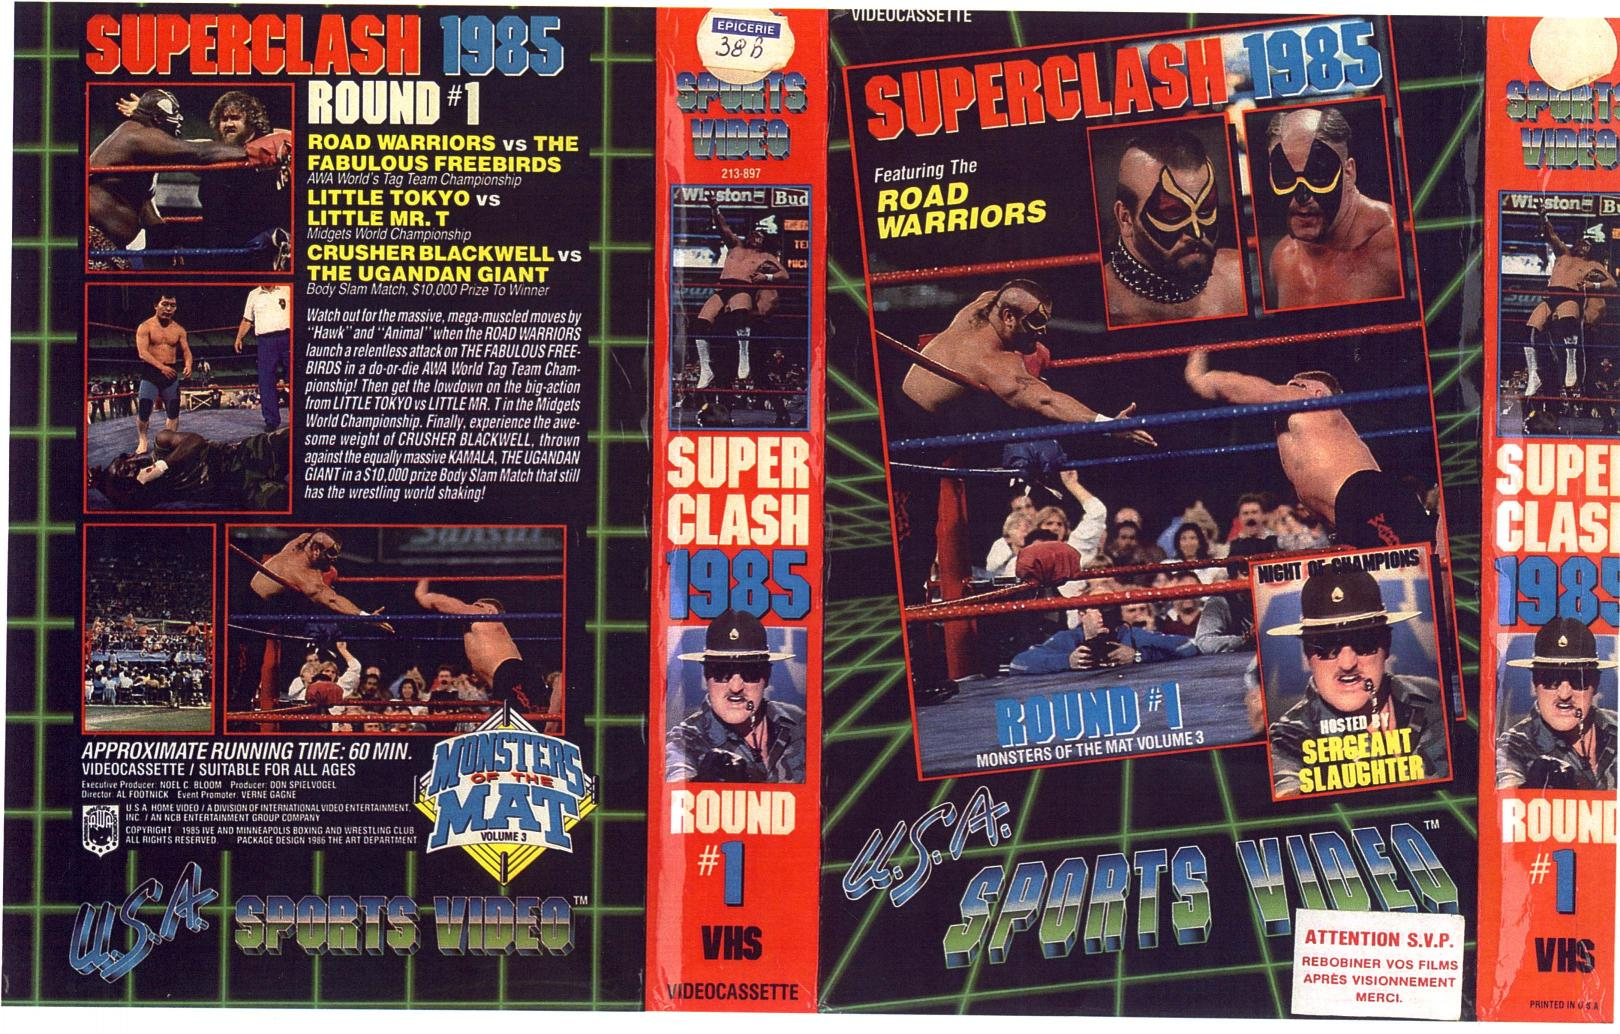 SuperClash_1985_round1